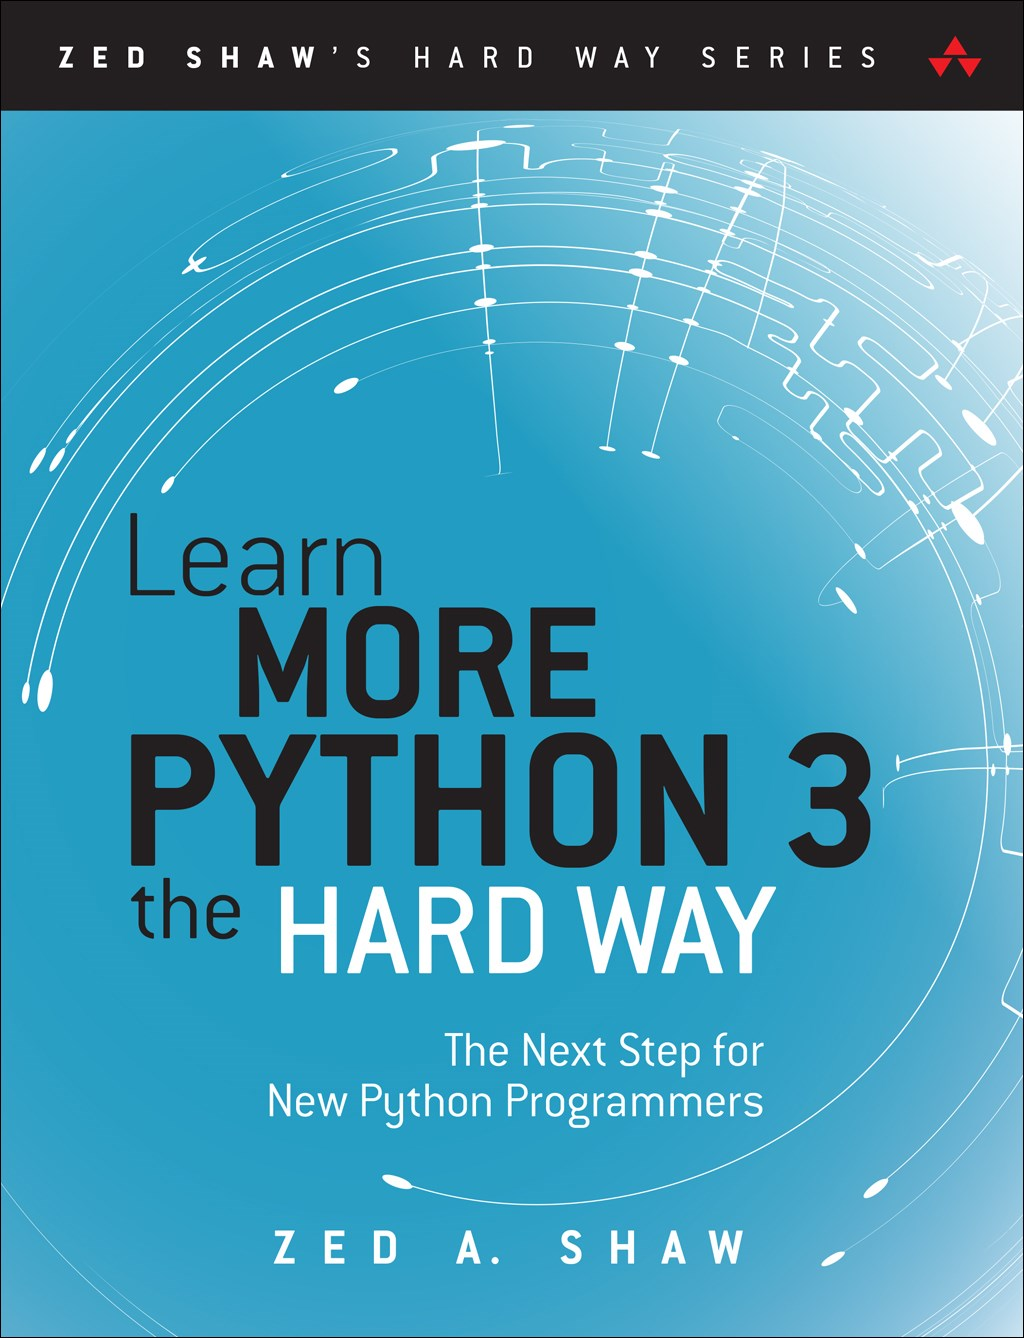 Learn More Python 3 the Hard Way: The Next Step for New